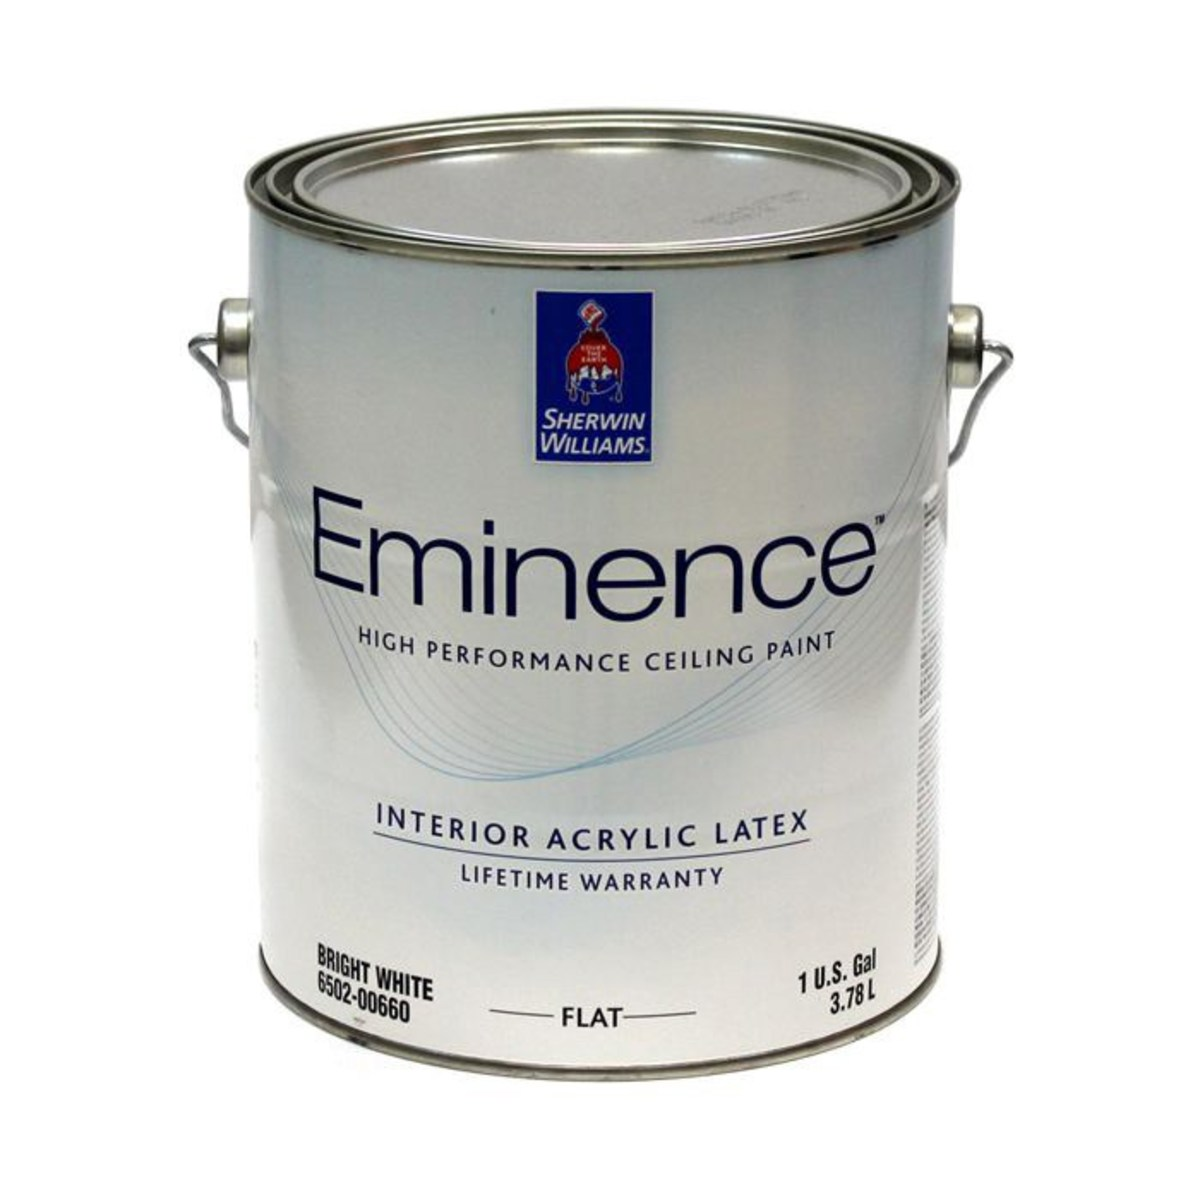 Sherwin williams eminence bright white ceiling paint www for Sherwin williams super paint cost